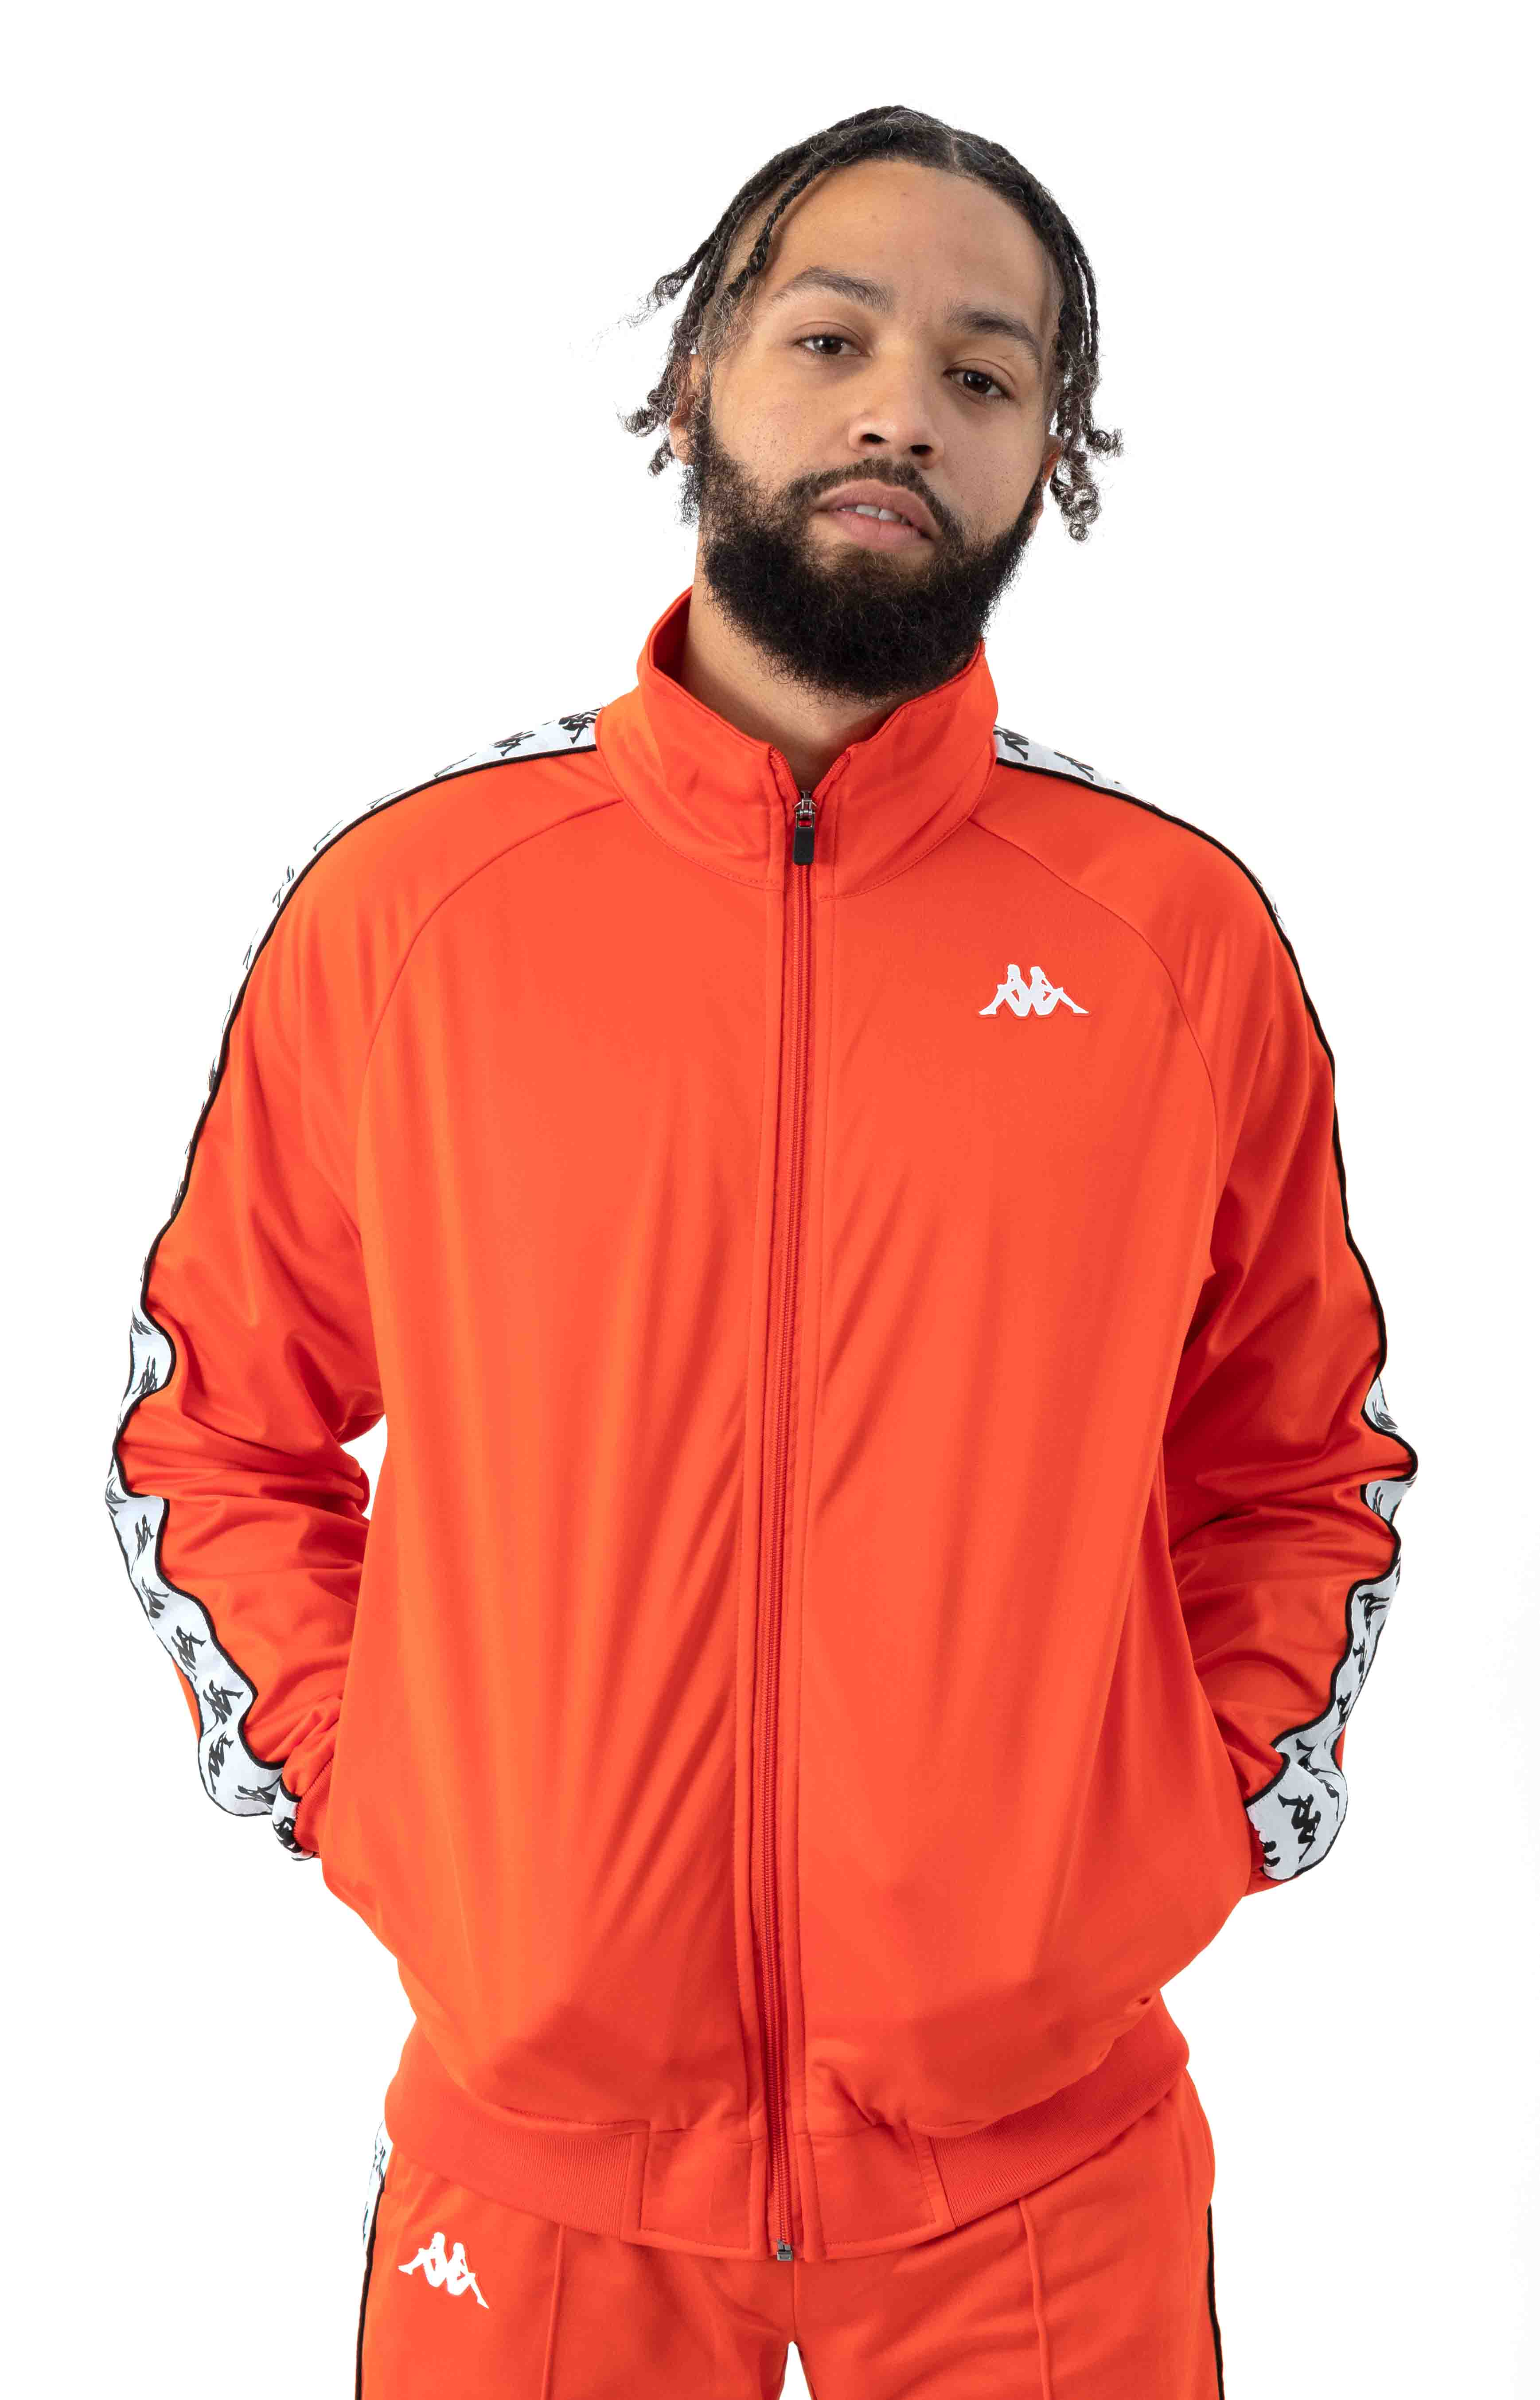 222 Banda Anniston Track Jacket - Orange Flame/White